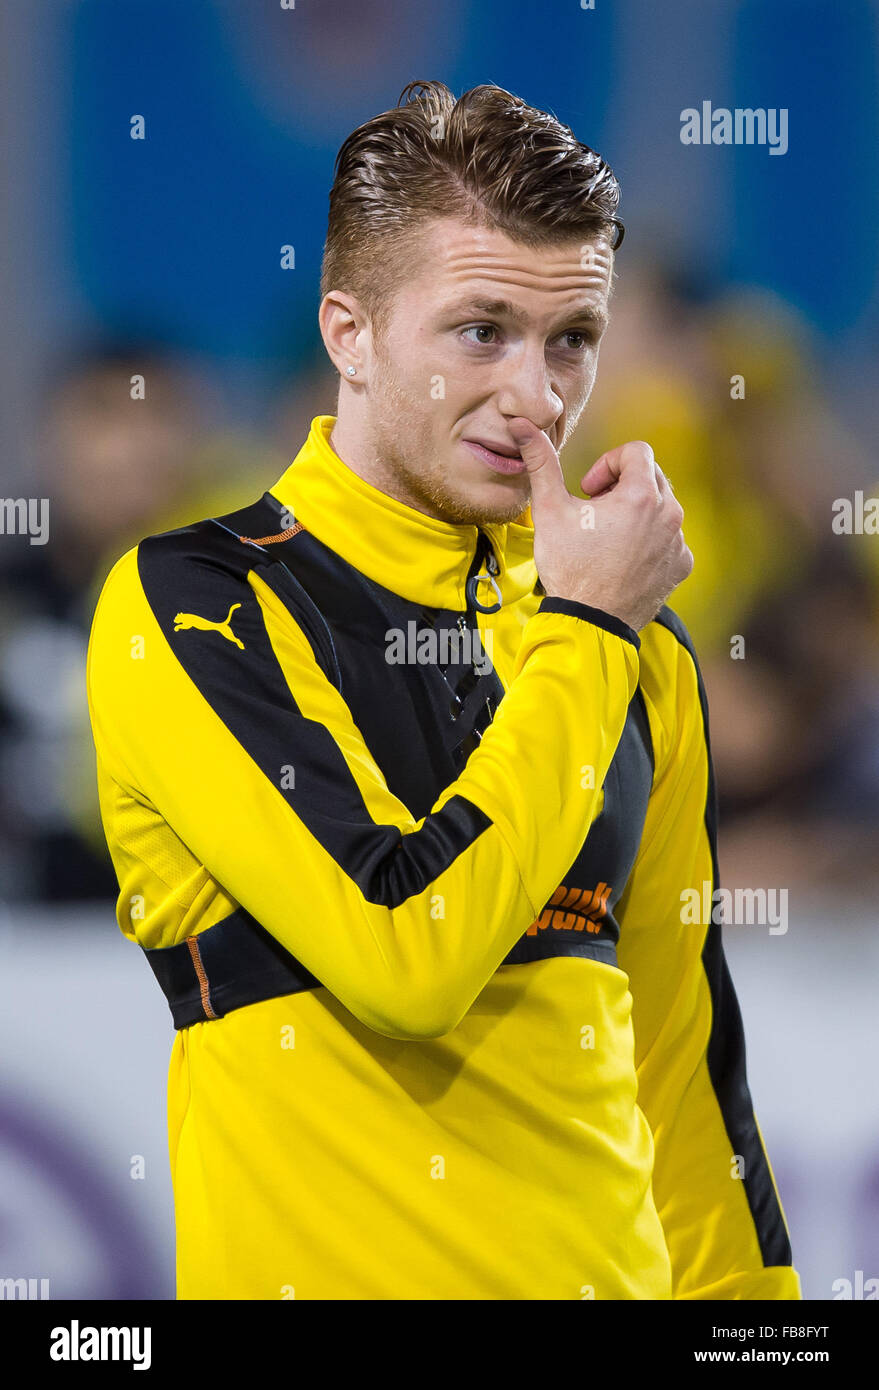 marco reus hairstyle 2017 inspiration – wodip